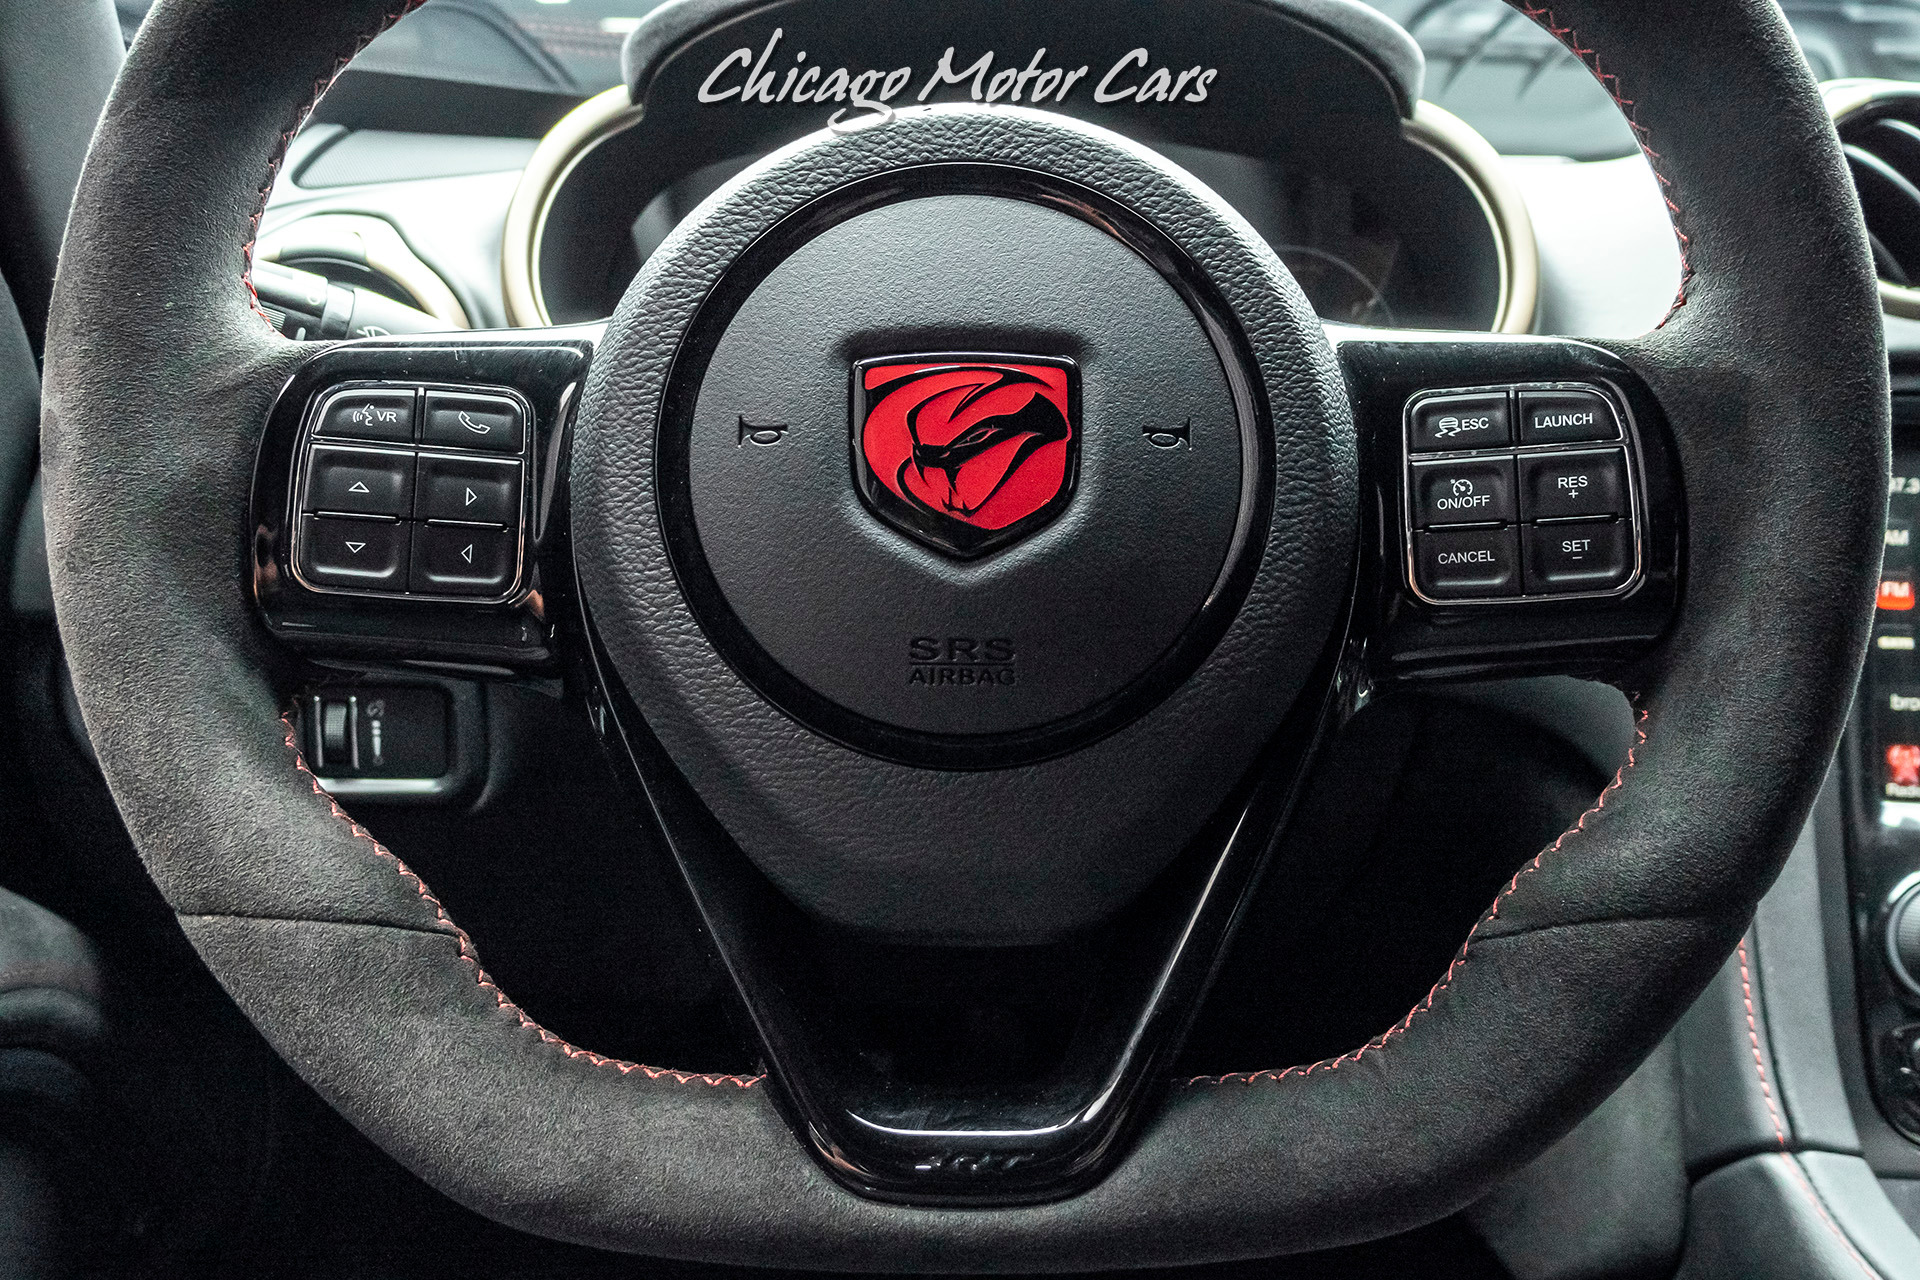 Used-2017-Dodge-Viper-ACR-EXTREME-Aero-Package-Coupe-Only-2k-Miles